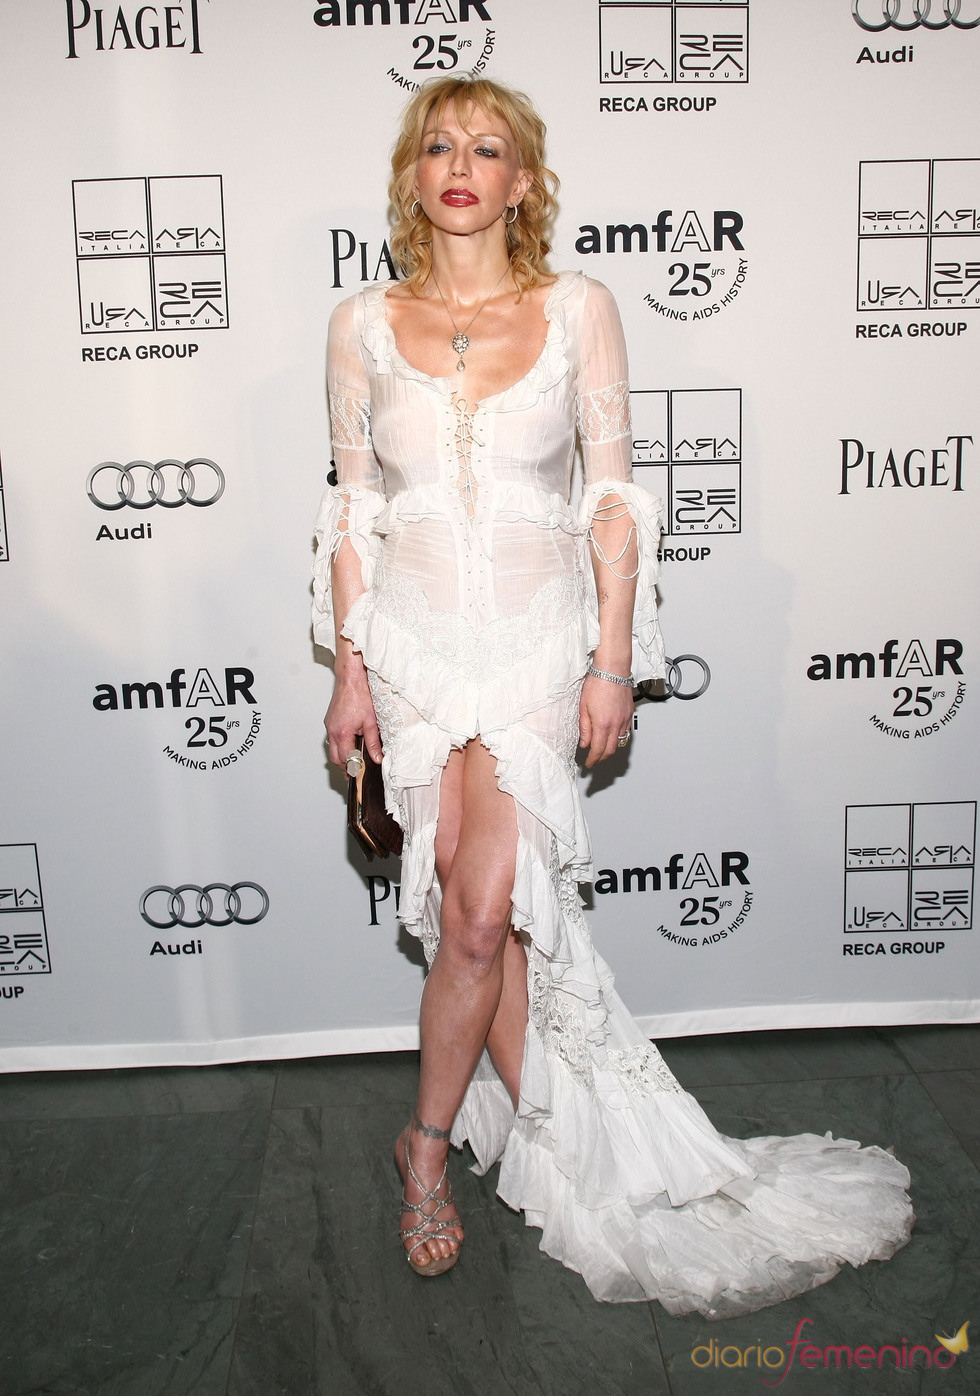 Courtney Love en la Gala amfAR 2011